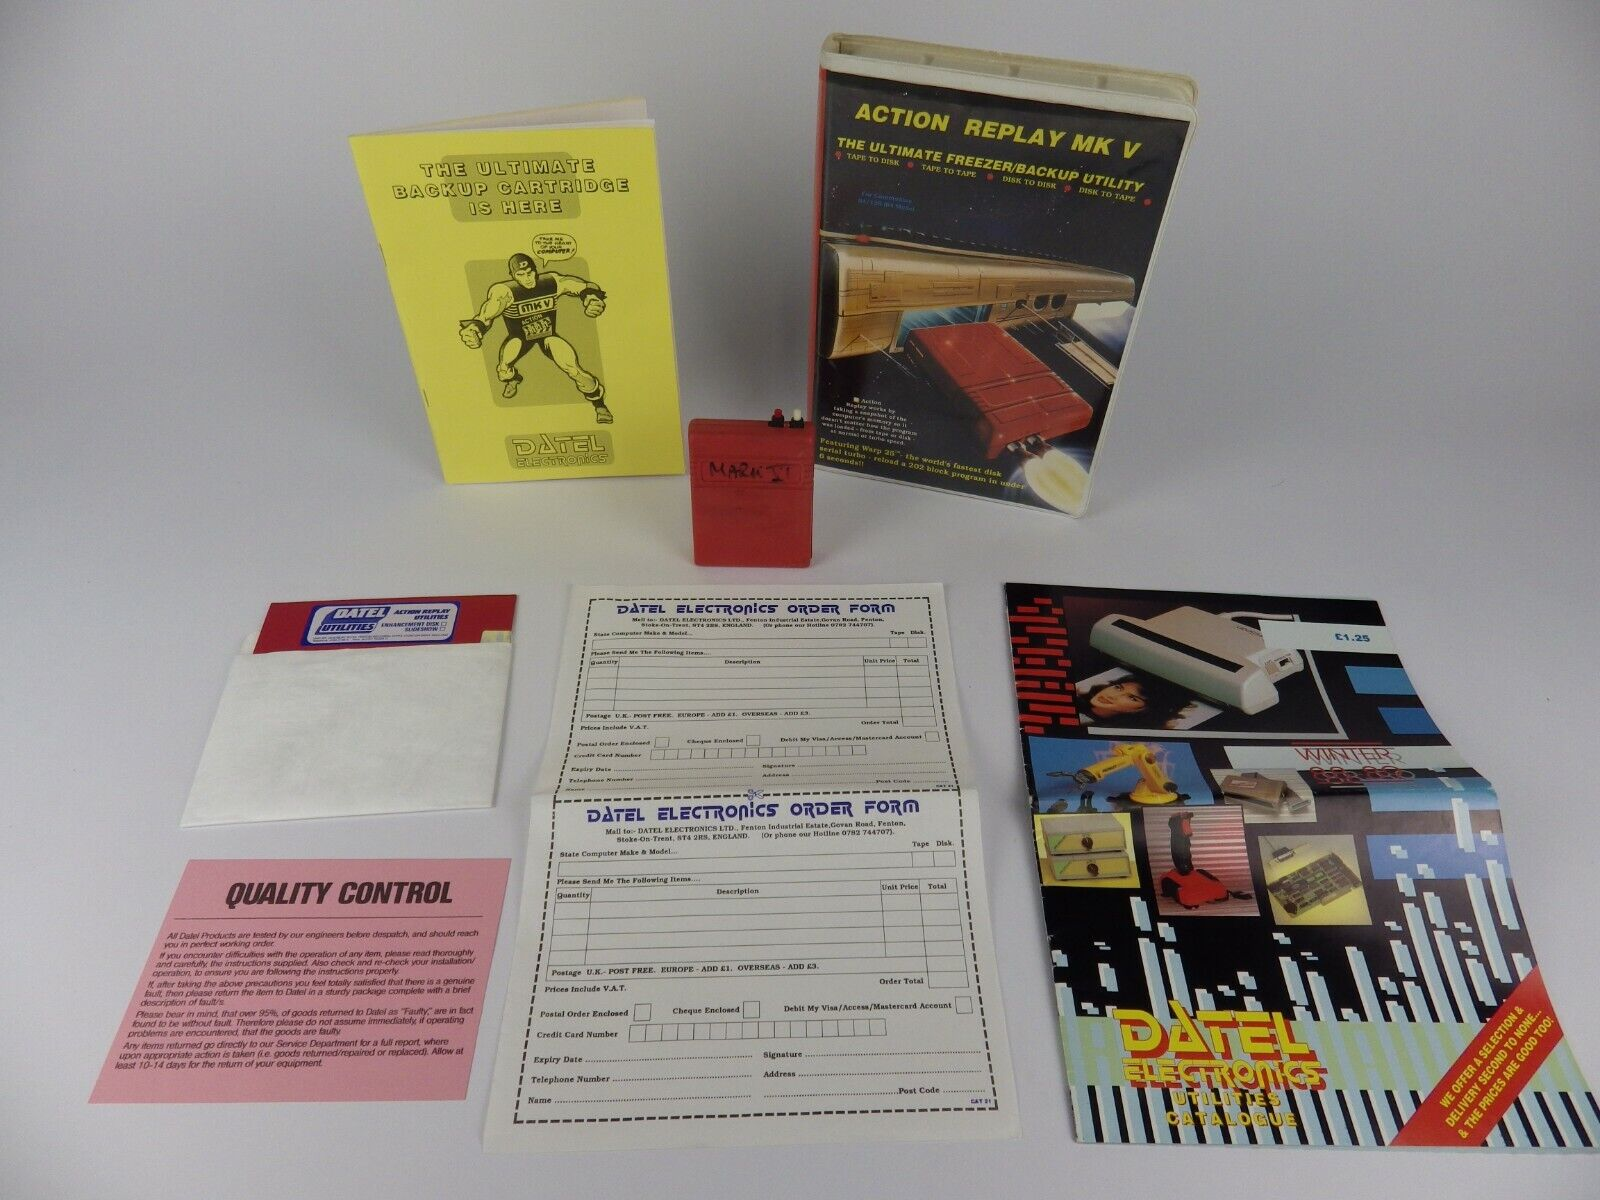 Computer Games - Complete Commodore 64 Boxed Action Replay Cartridge Set